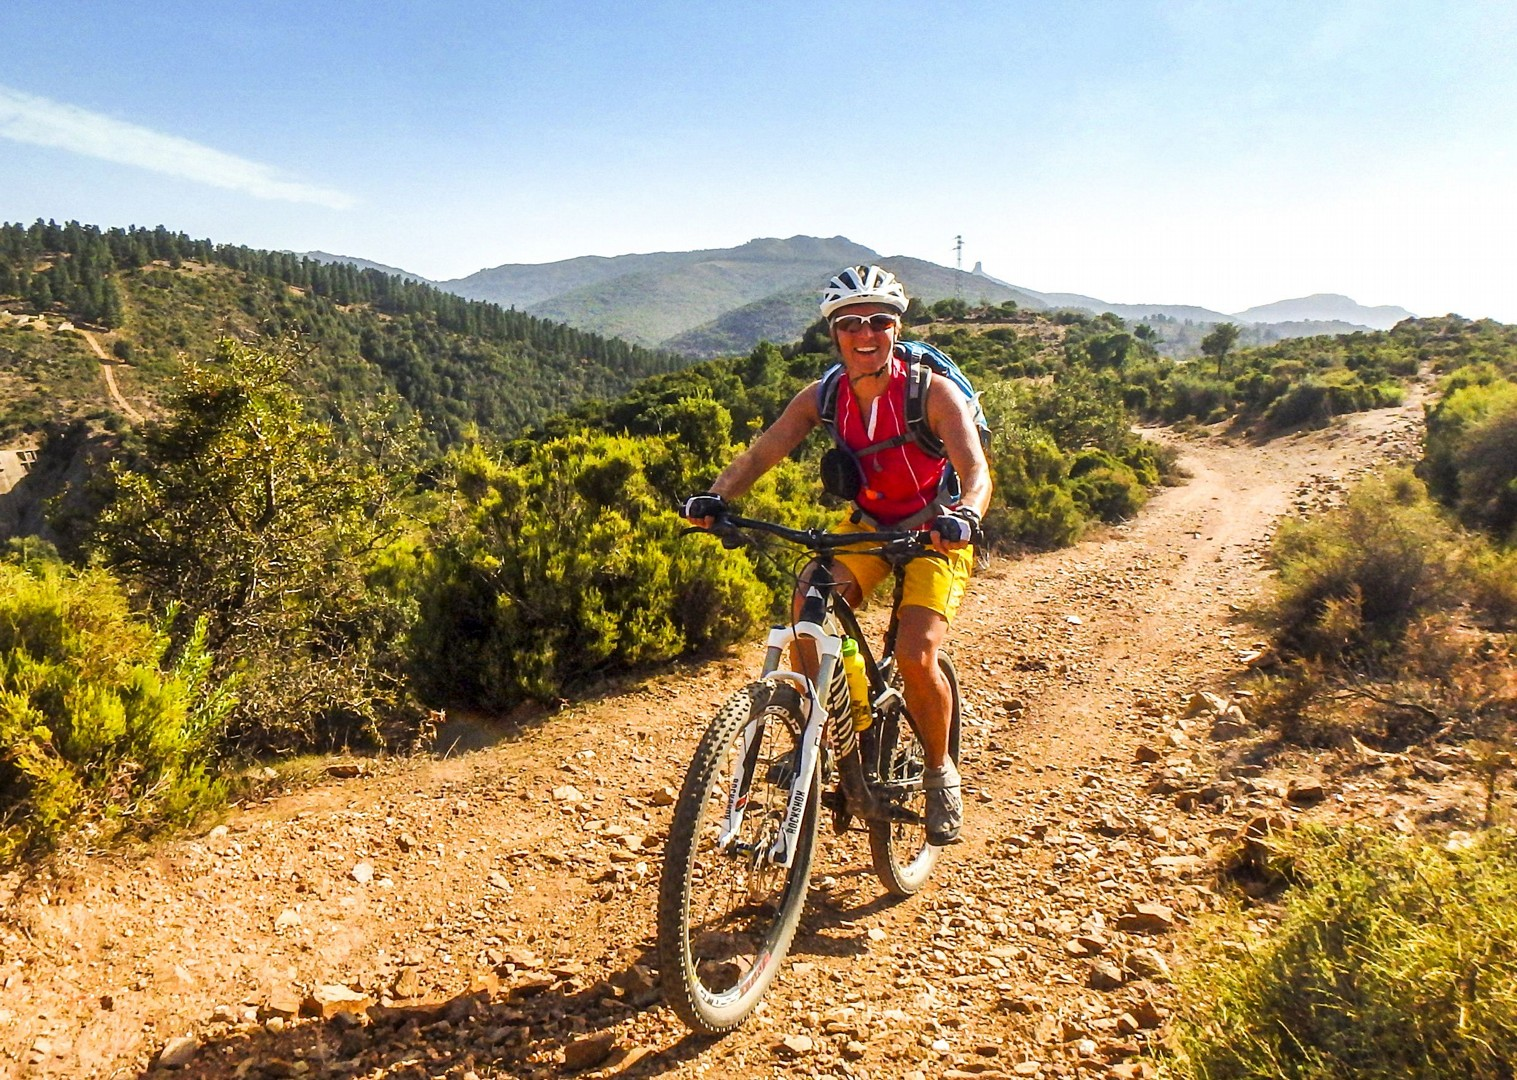 woman-mountain-biking-saddle-skedaddle-sardinia-italy.jpg - Italy - Sardinia - Coast to Coast - Self-Guided Mountain Bike Holiday - Italia Mountain Biking